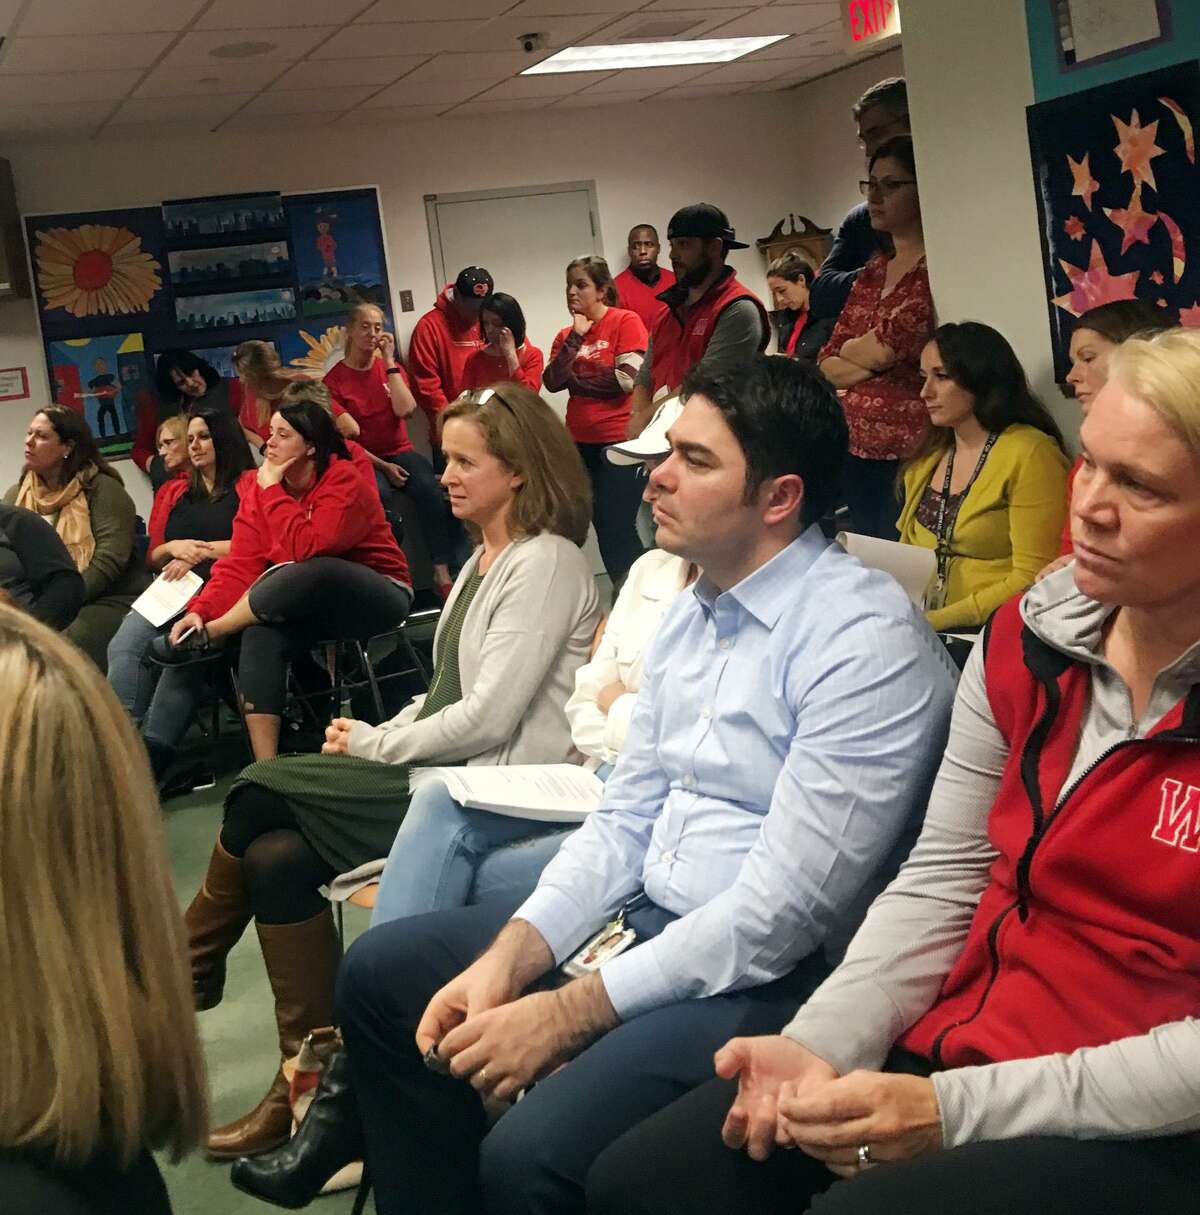 Parents and staff from Westover Magnet Elementary School showed up to a Board of Education meeting on Oct. 23, 2018 in Stamford, Conn. to complain about the issues caused by pervasive mold in the building.